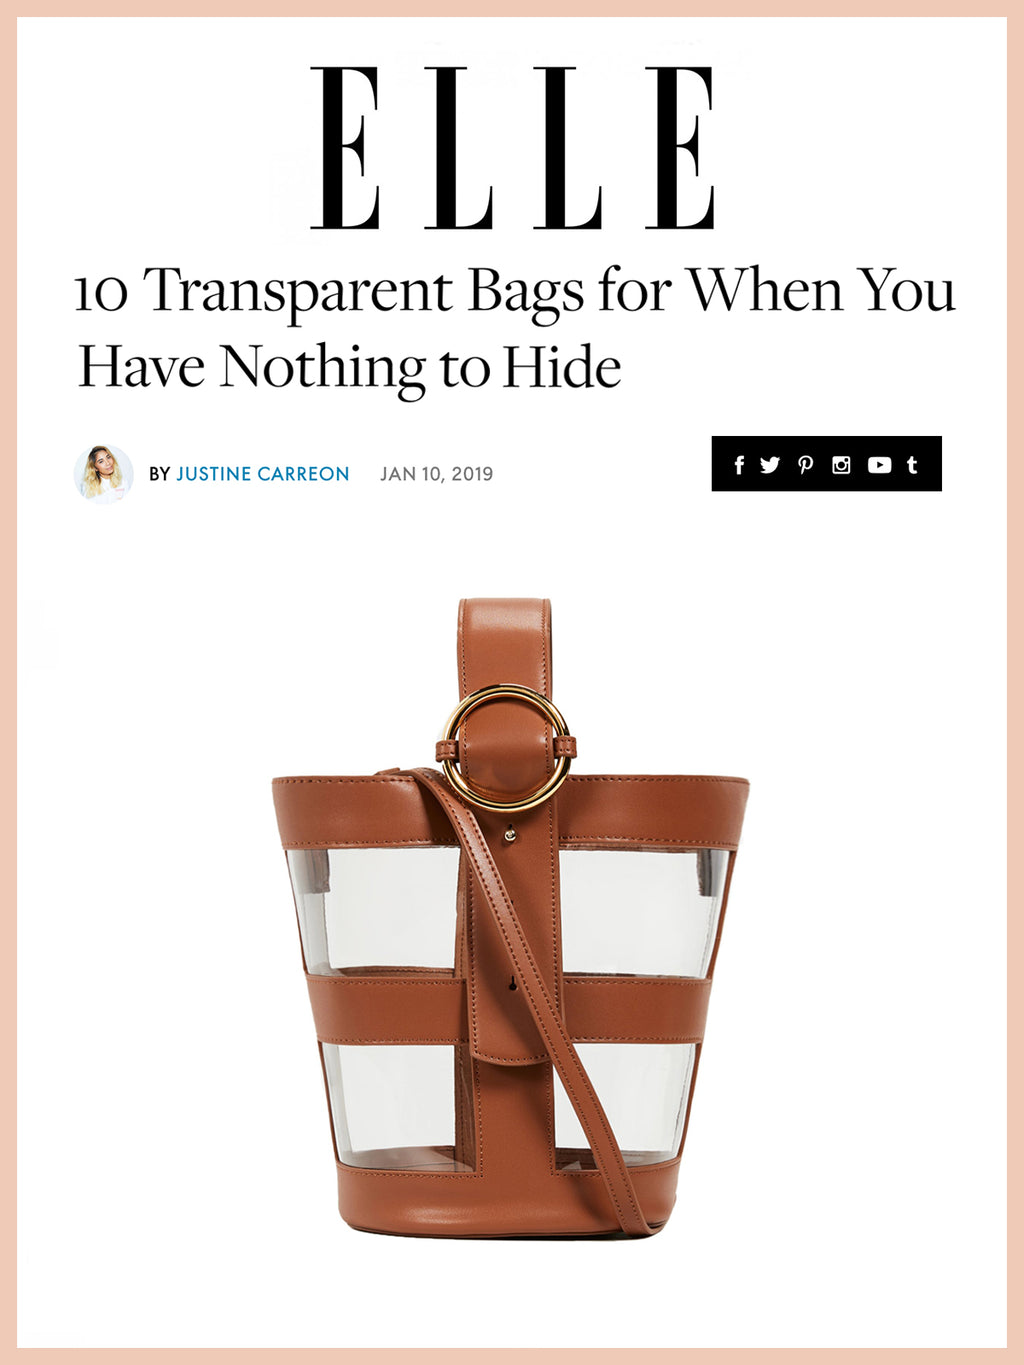 ELLE, 10 Transparent Bags for When You Have Nothing to Hide